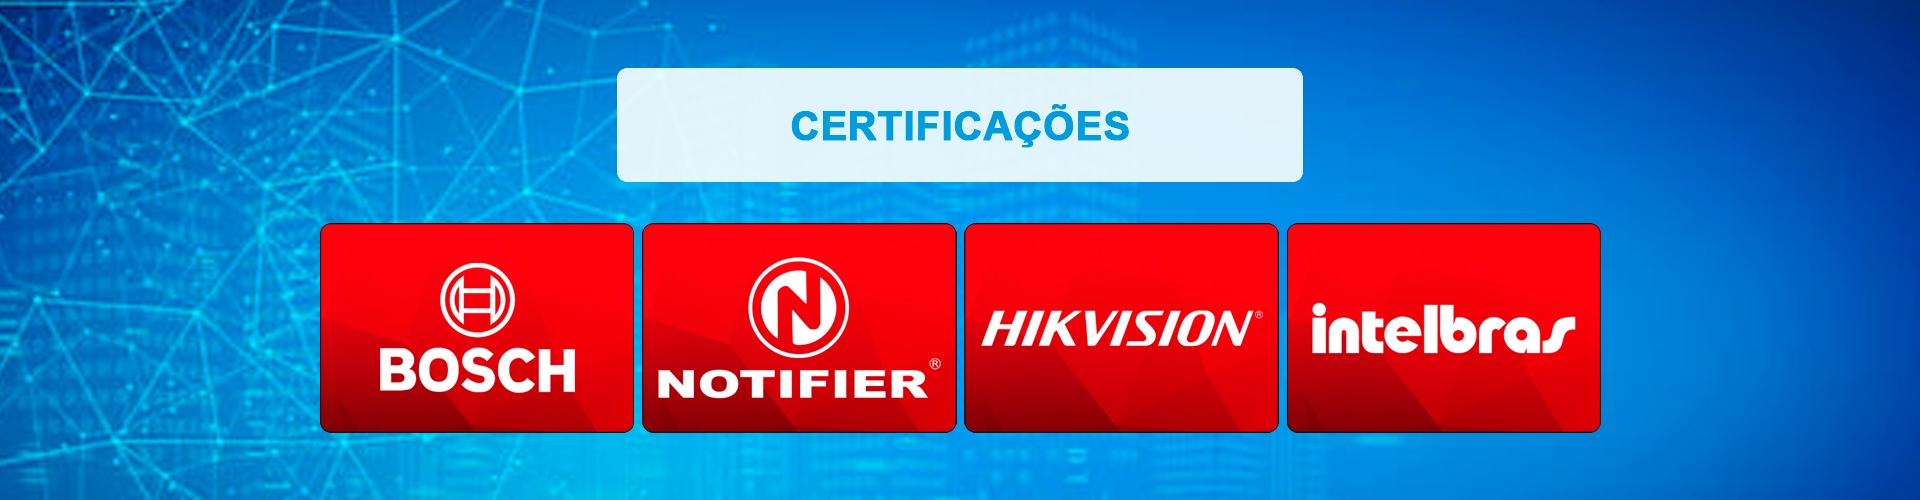 certificacao-home